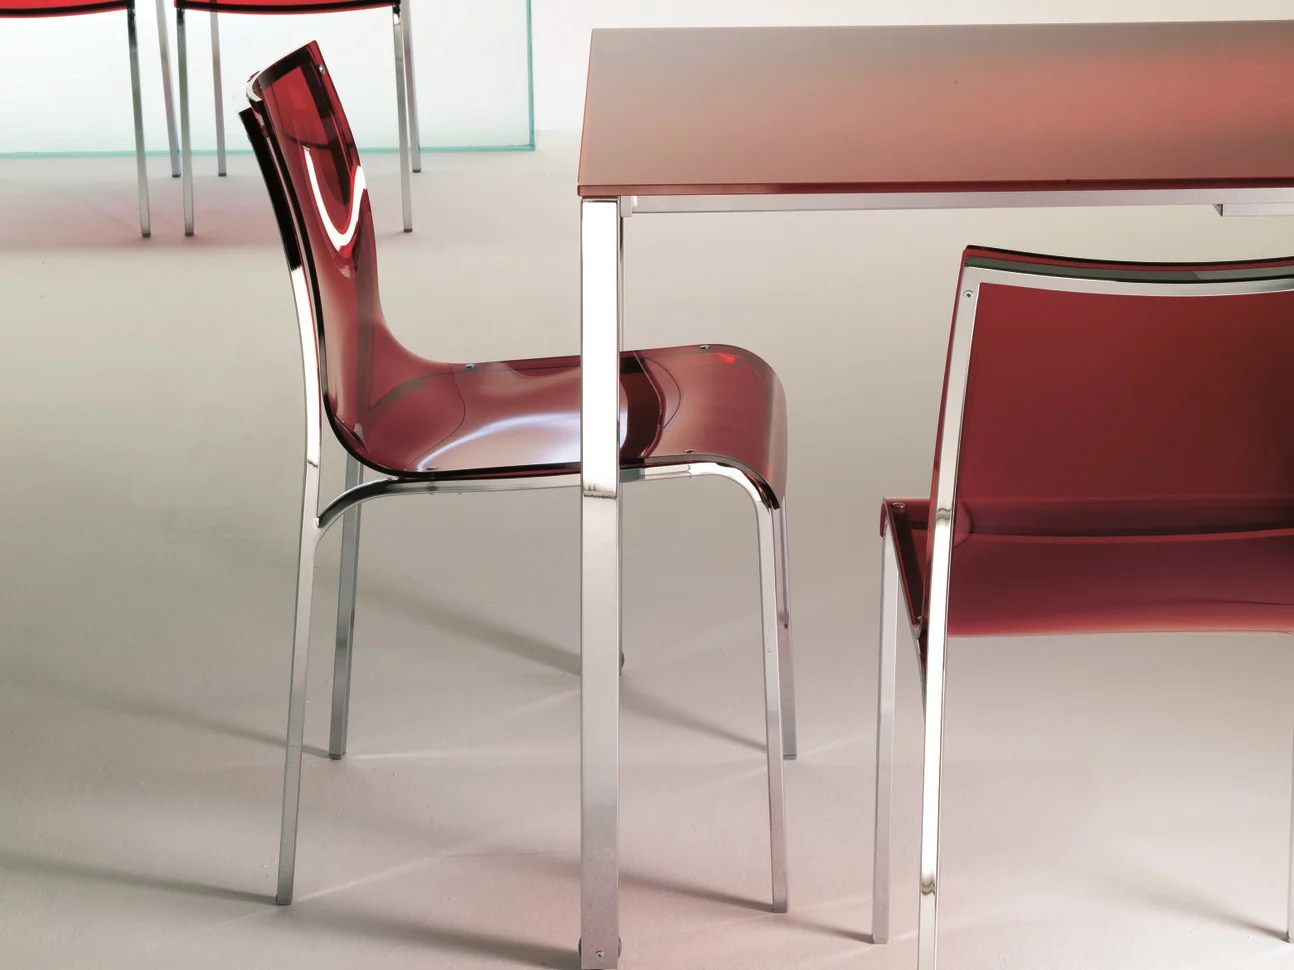 Glass Chair Acrylic Glass Chair Yoga By Bontempi Casa Design Daniele